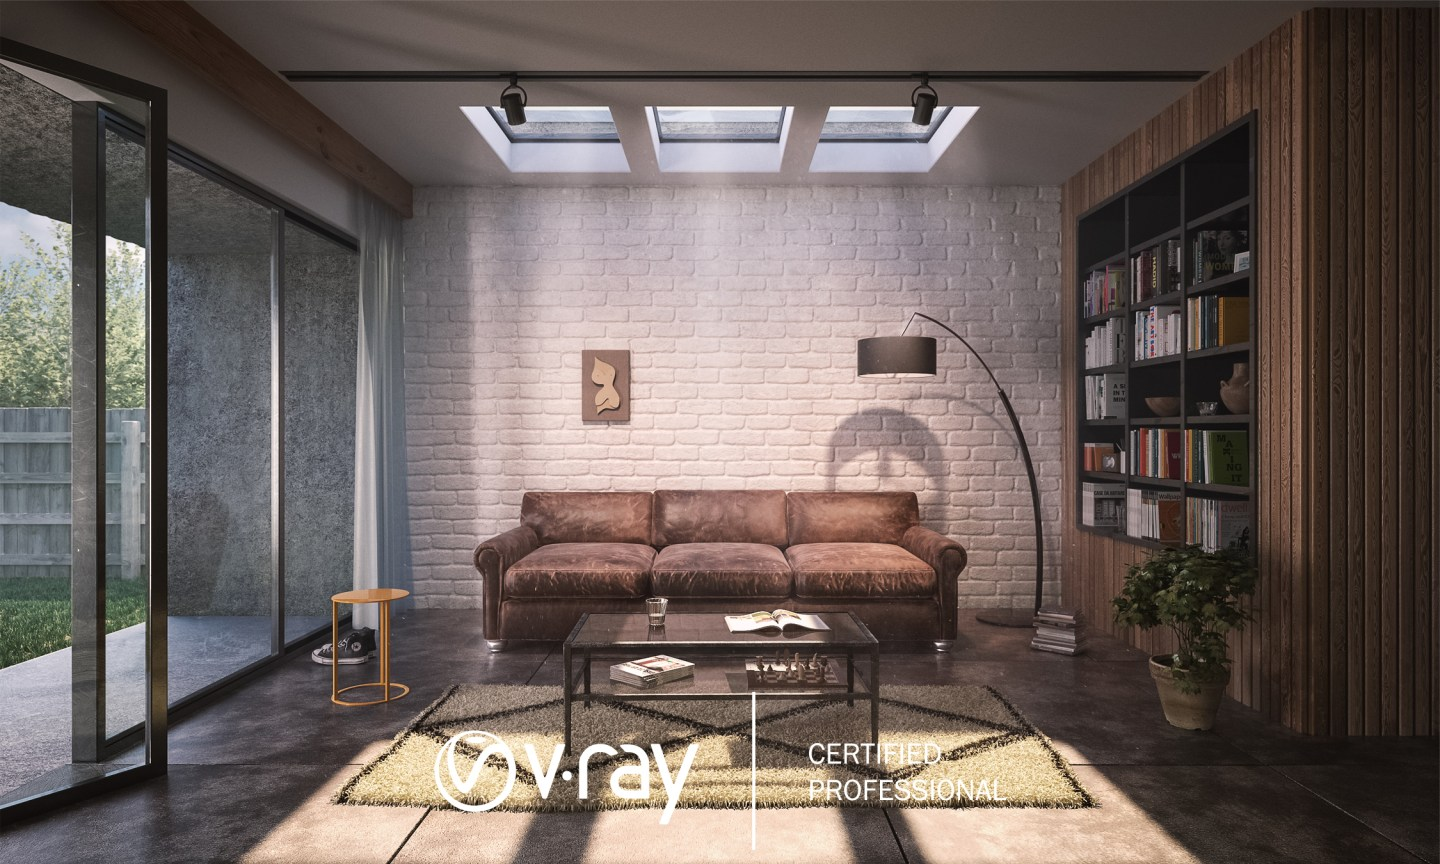 Corso V-Ray Next Roma - Donato Locantore